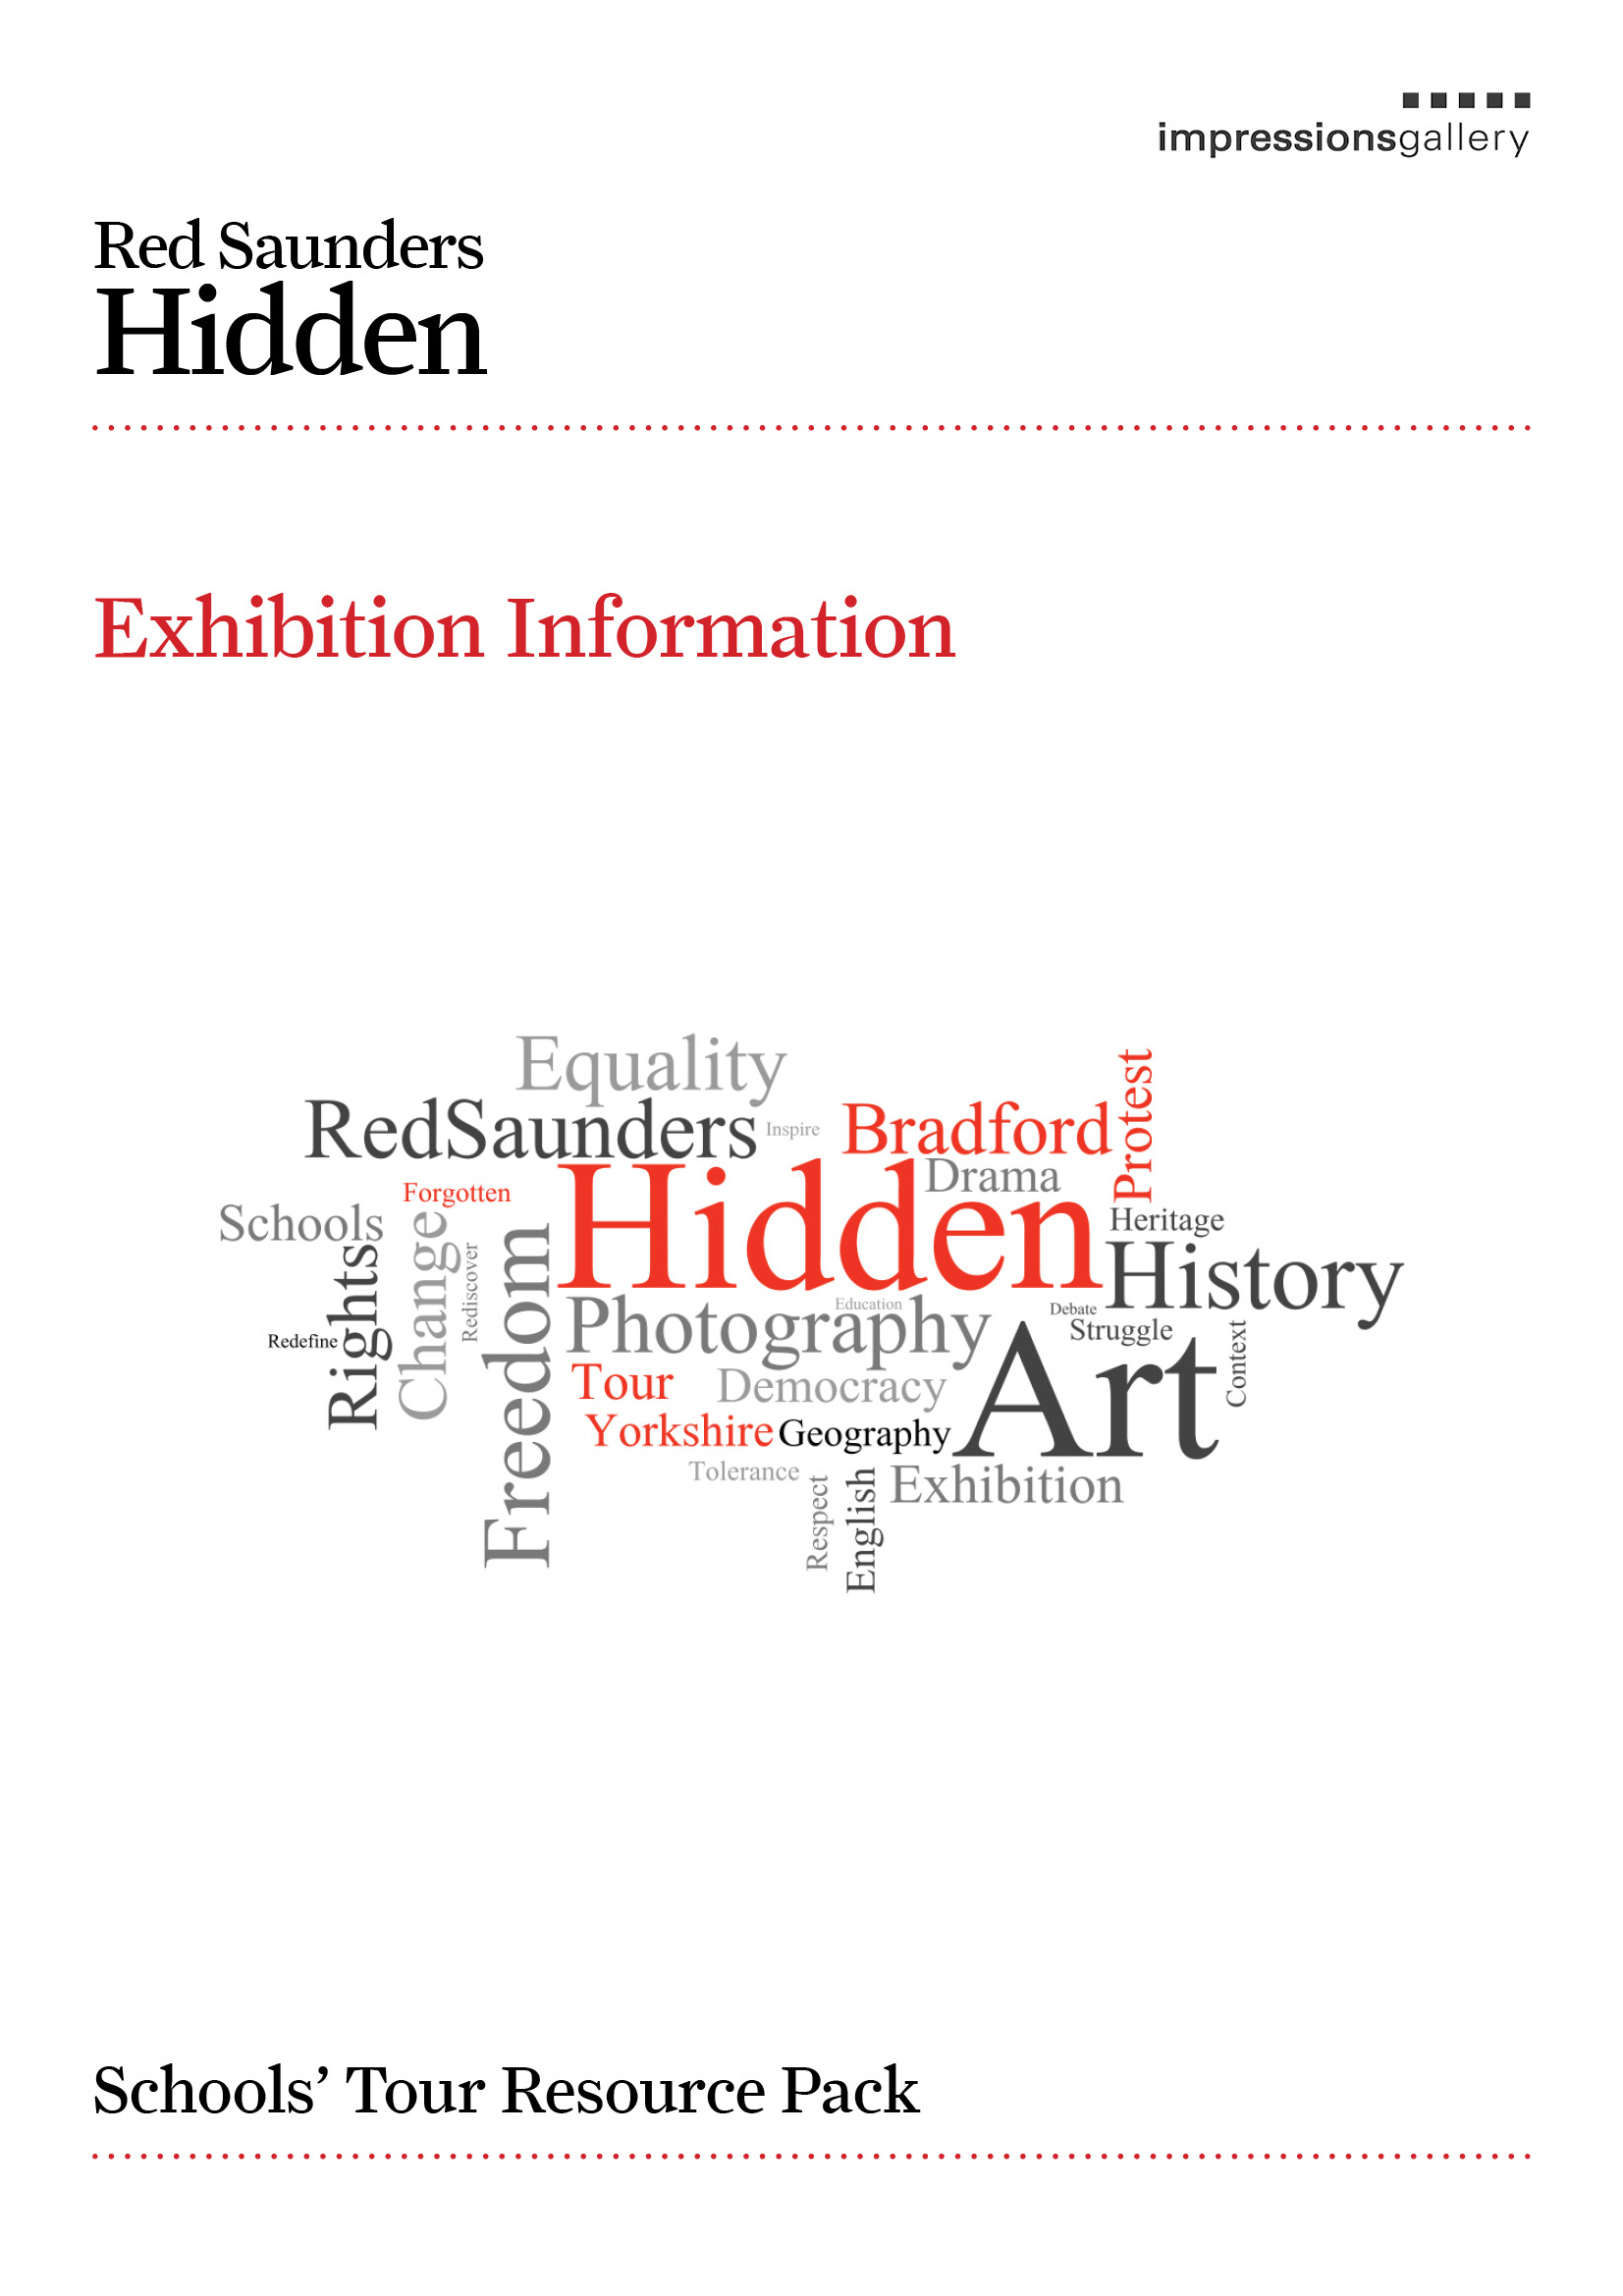 Resource Pack Cover Hidden Schools Tour Exhibition Information